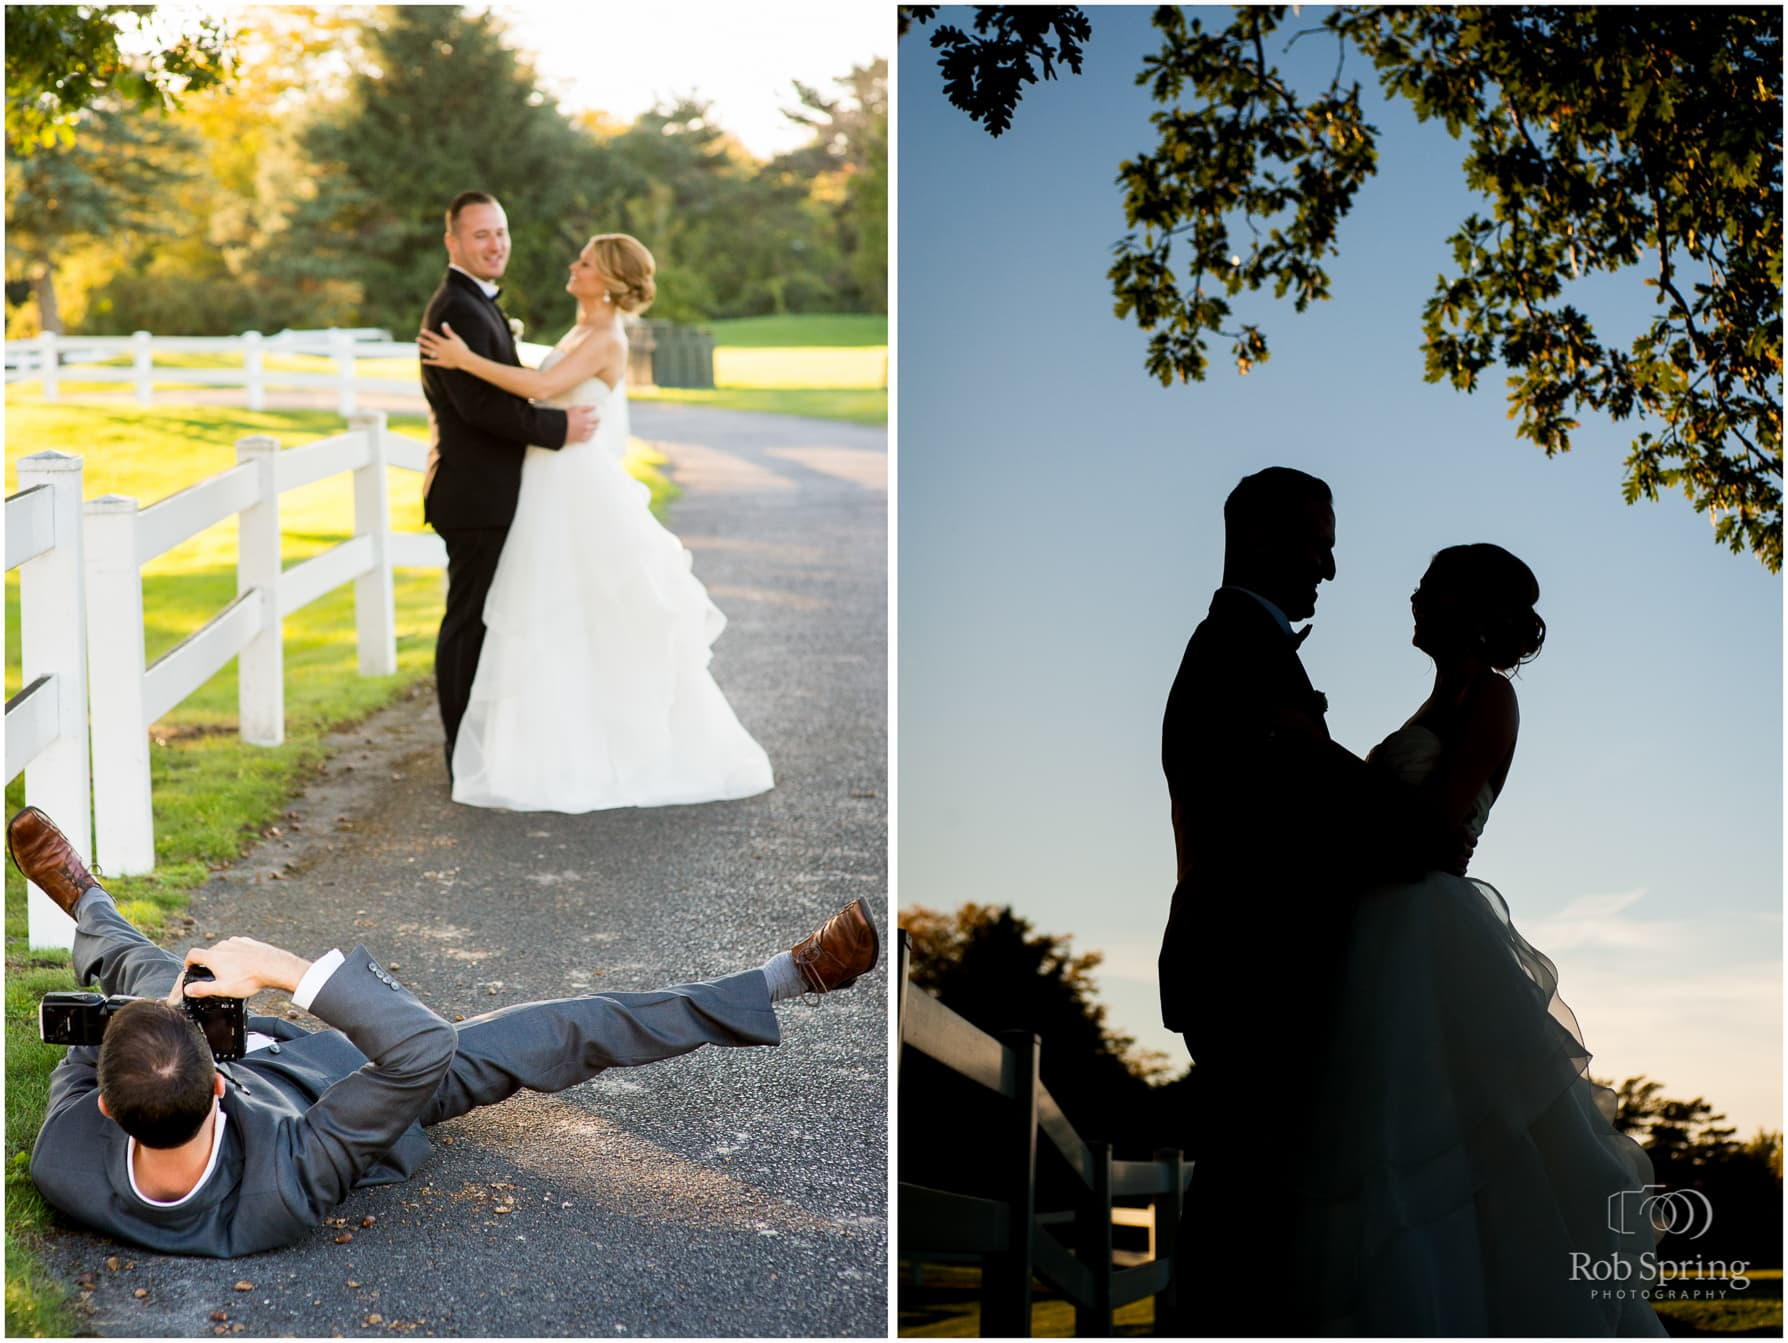 Albany Country Club Wedding photographer laying on ground for silhouette